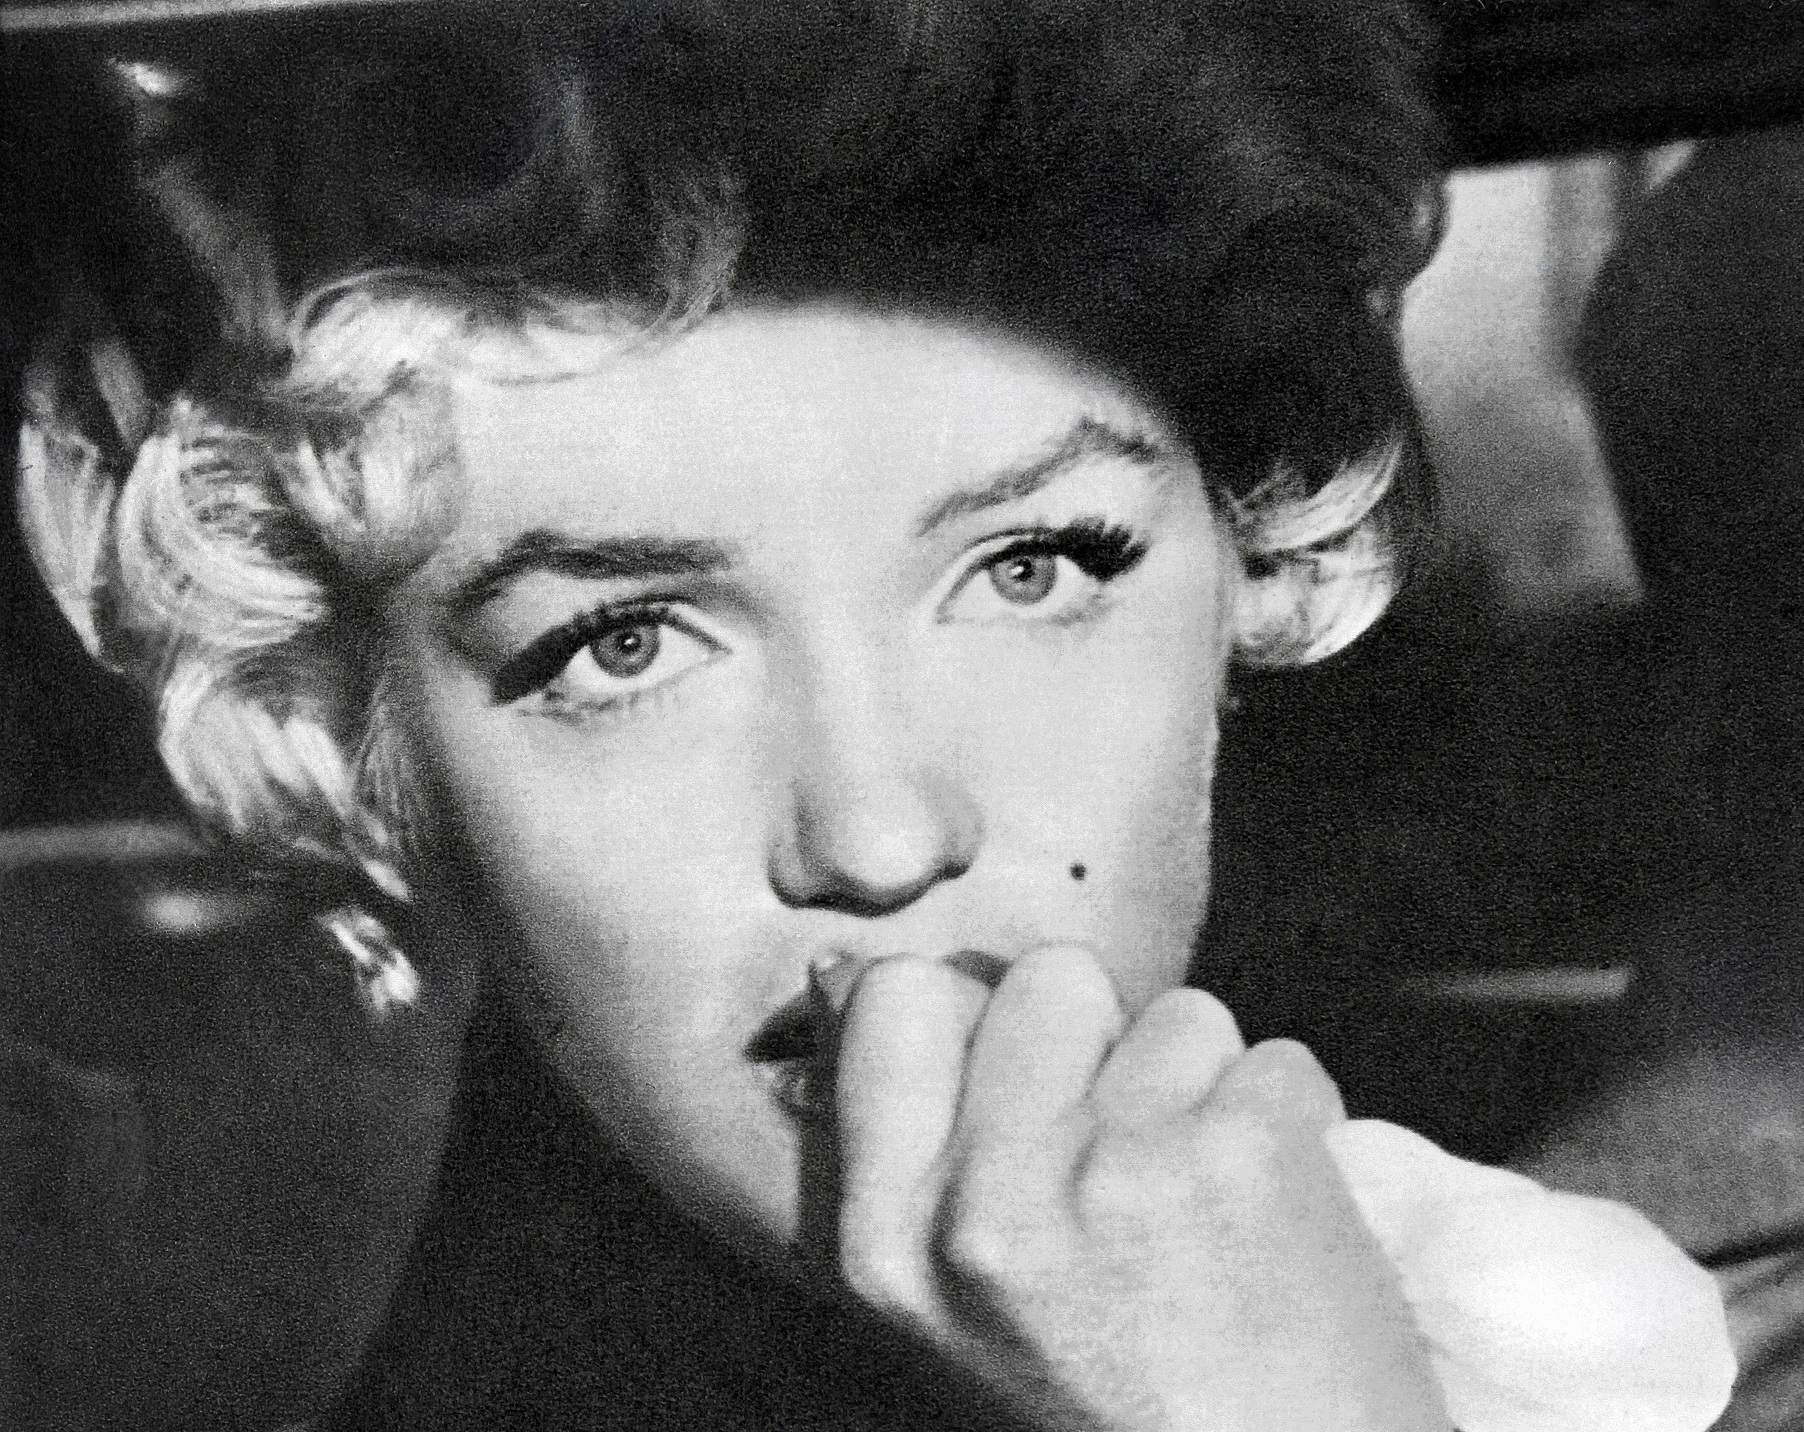 From Marilyn Monroe to Audrey Hepburn: why dead women make the ideal brand ambassadors